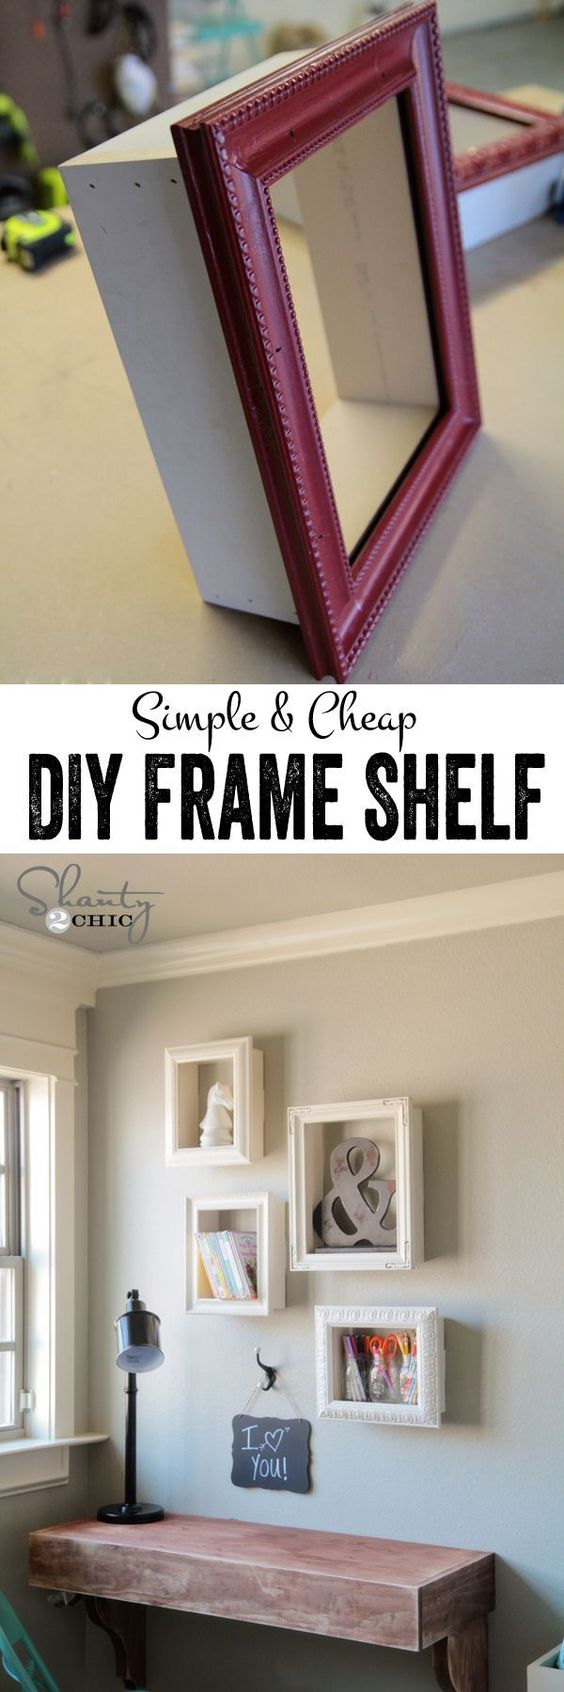 Incorporate Trends into Thrift Store Frames.: